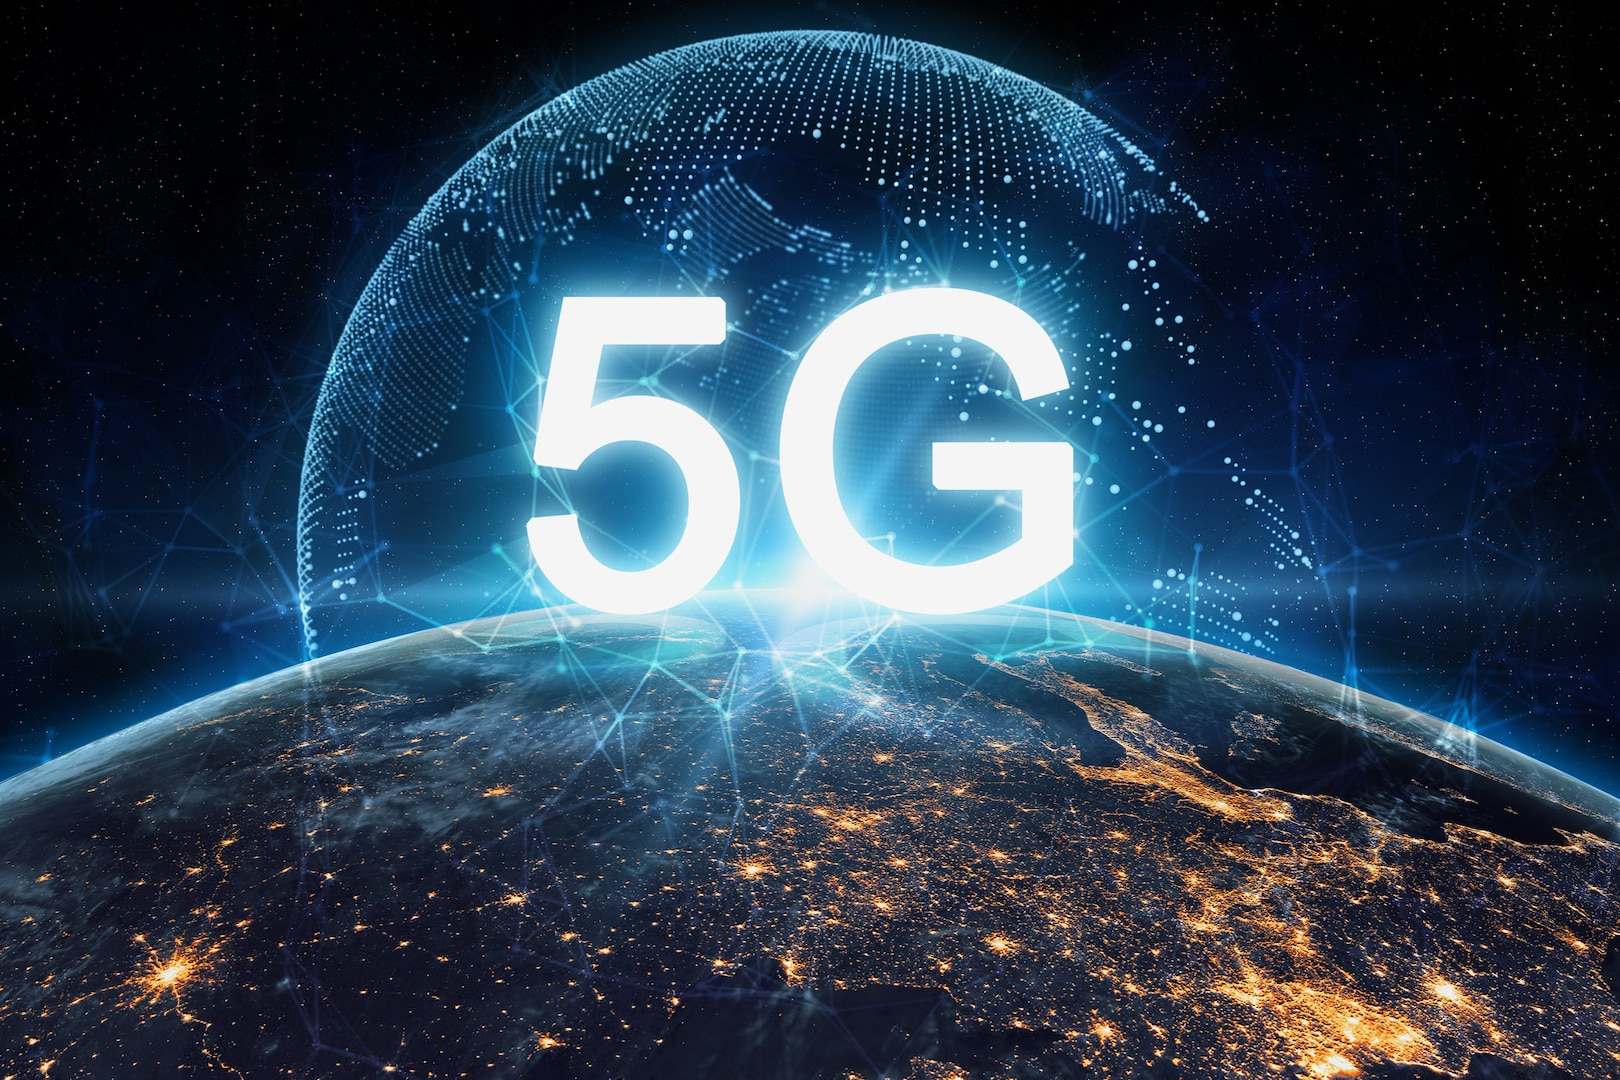 The Department of Defense has taken historic action to advance the application of 5G communications for America's warfighters.